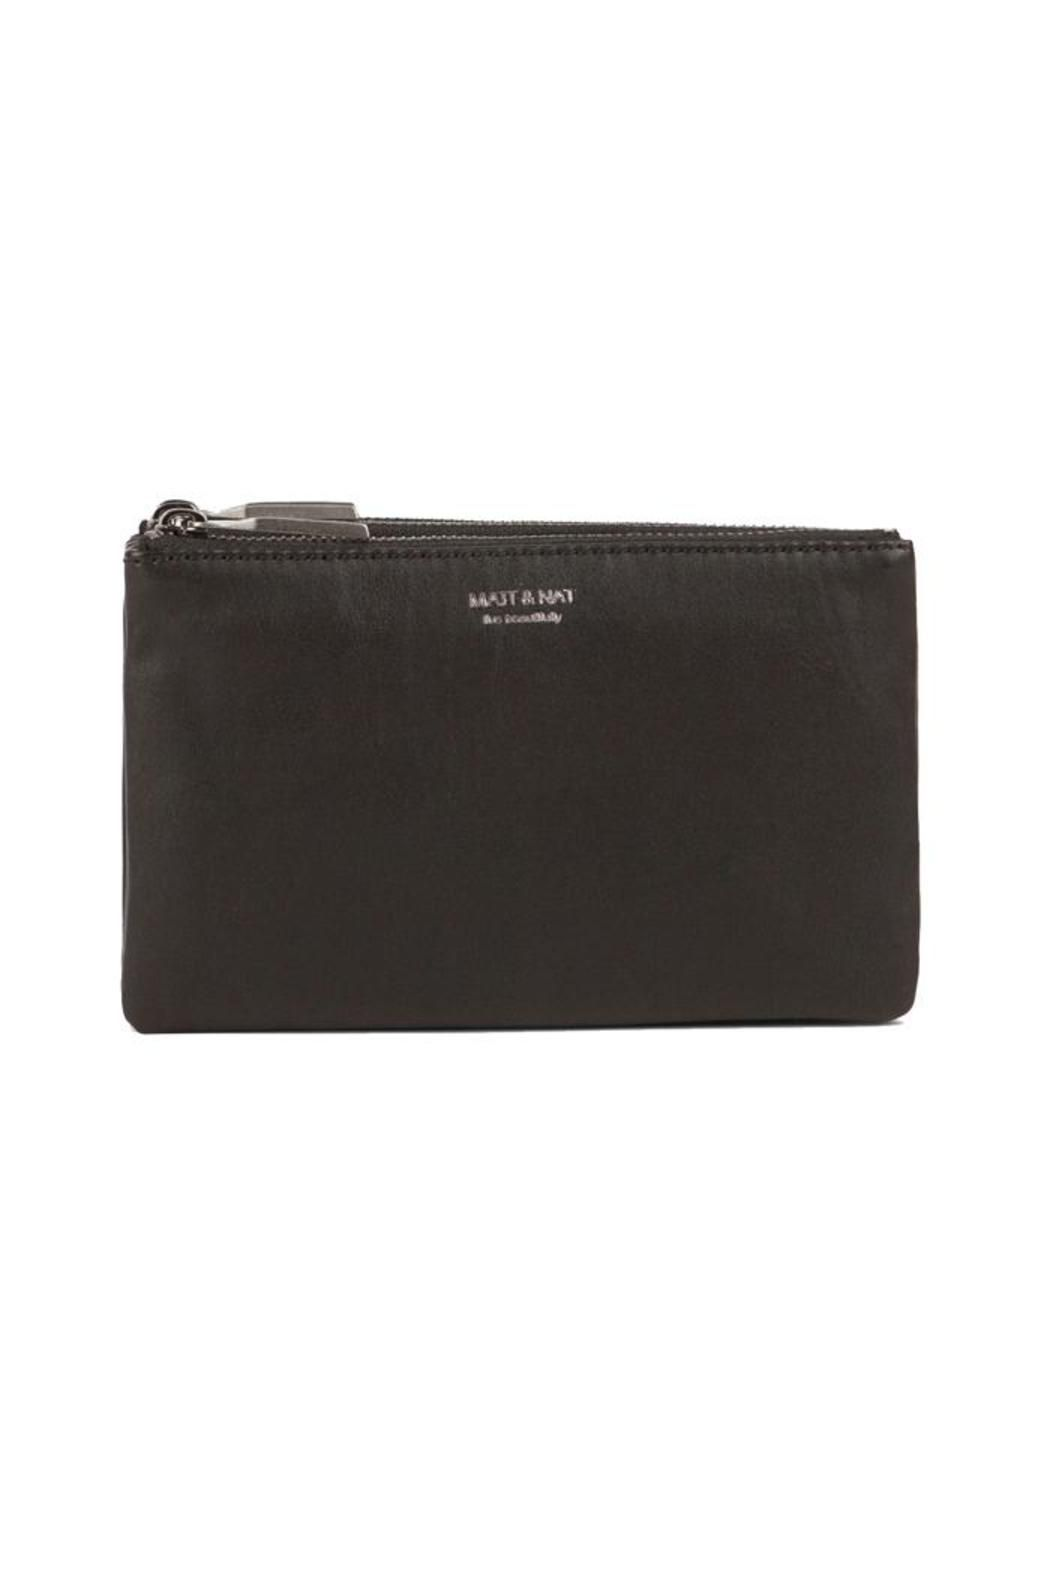 """Triplet Black Wallet. 3 separate zipped compartments. 12 credit card slots and 1 patch pocket.   Dimensions: 8"""" X 5.5"""" X 2"""". Vegan Leather Wallet by Matt & Nat. Bags - Wallets & Wristlets Pennsylvania"""